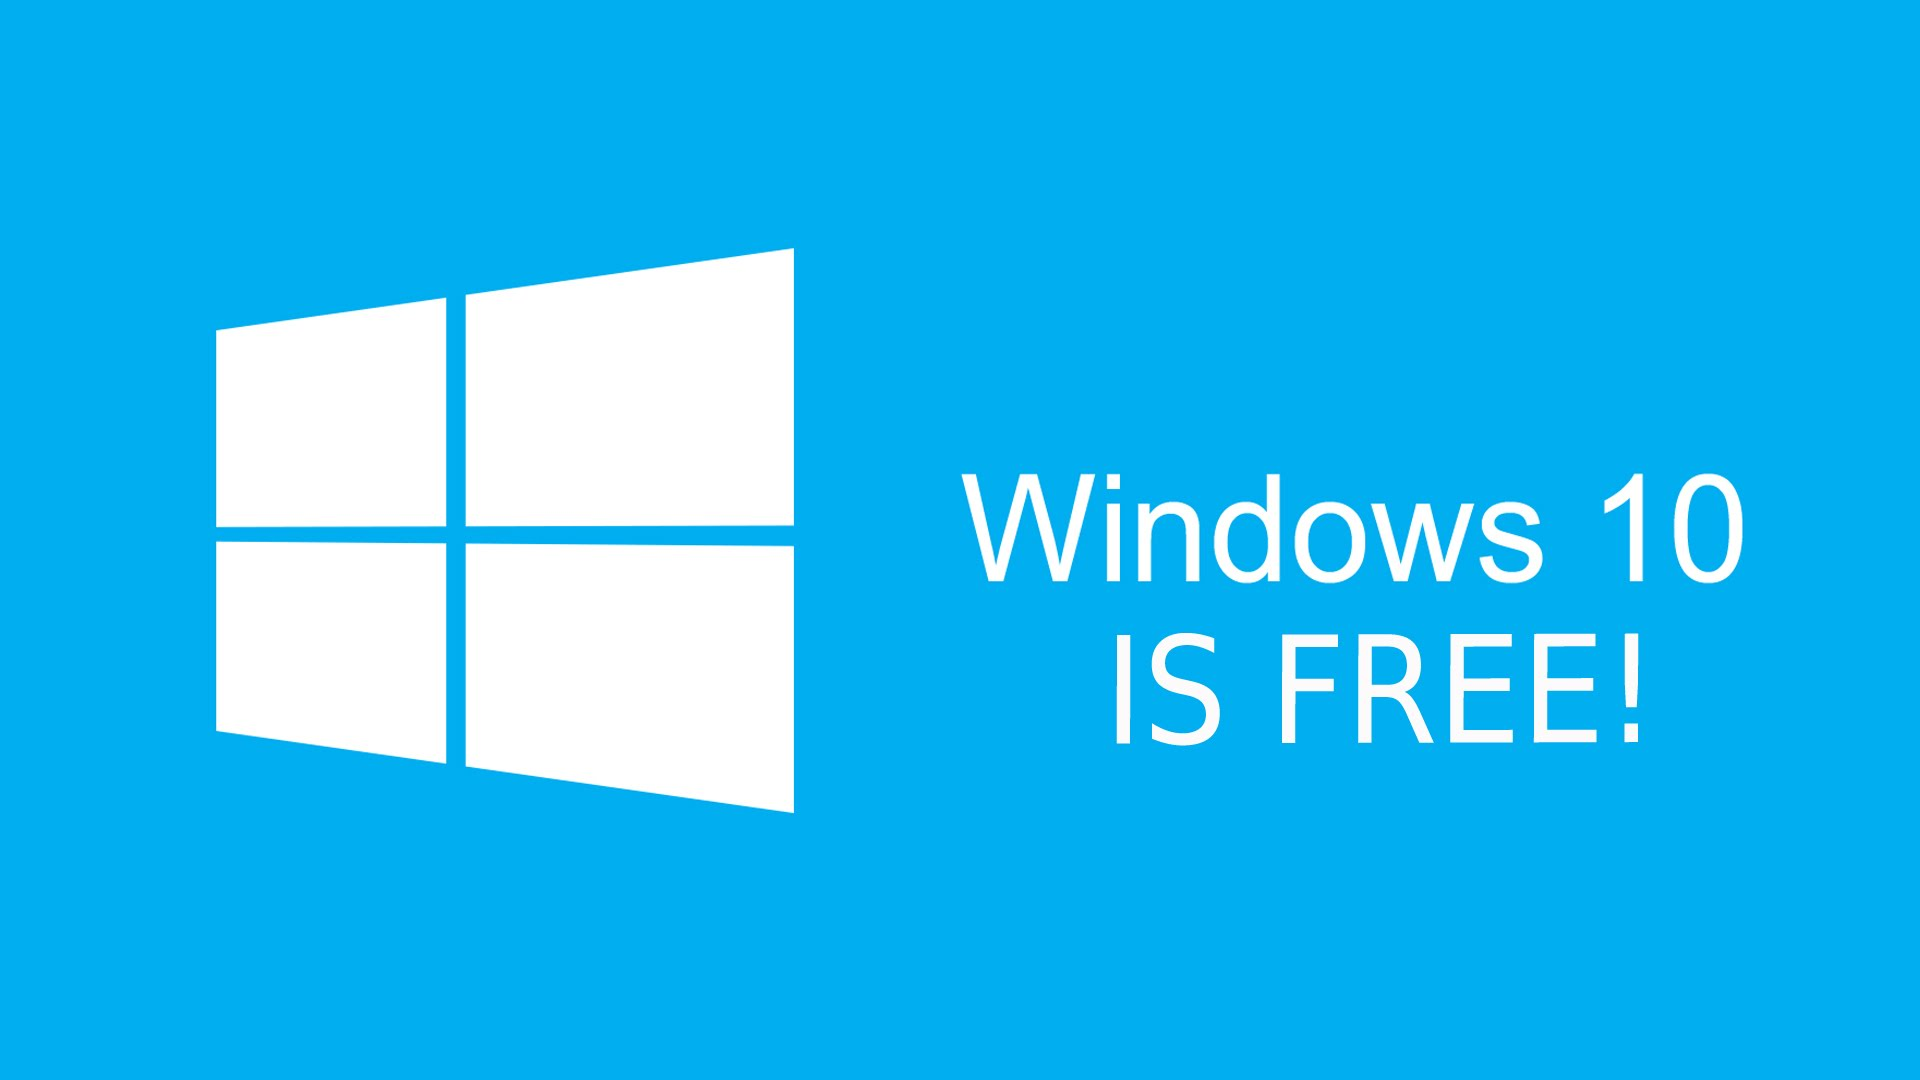 Windows 10 Available on July 29, 2015